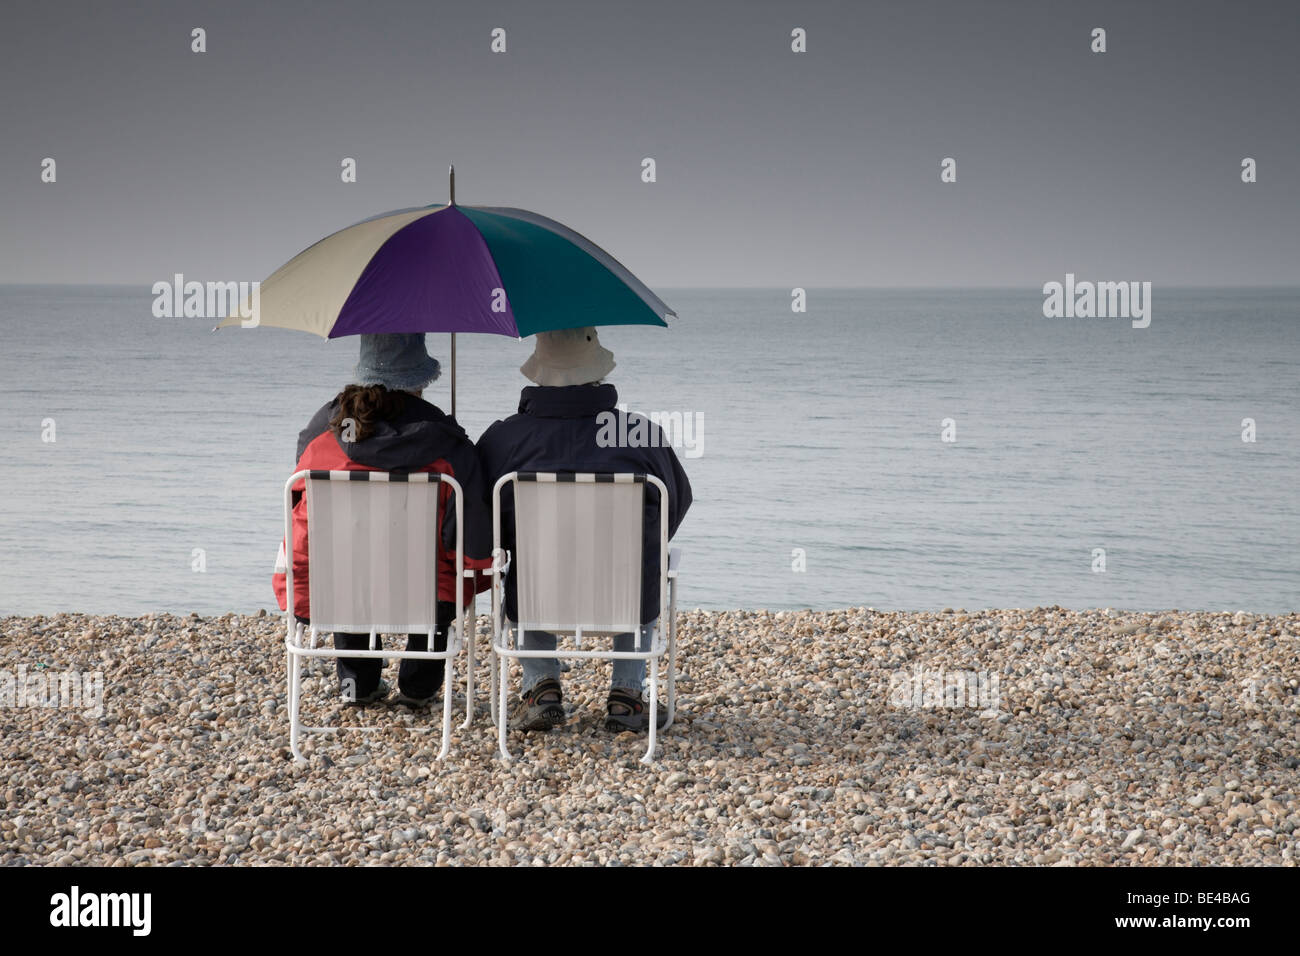 A bleak outlook. - Stock Image